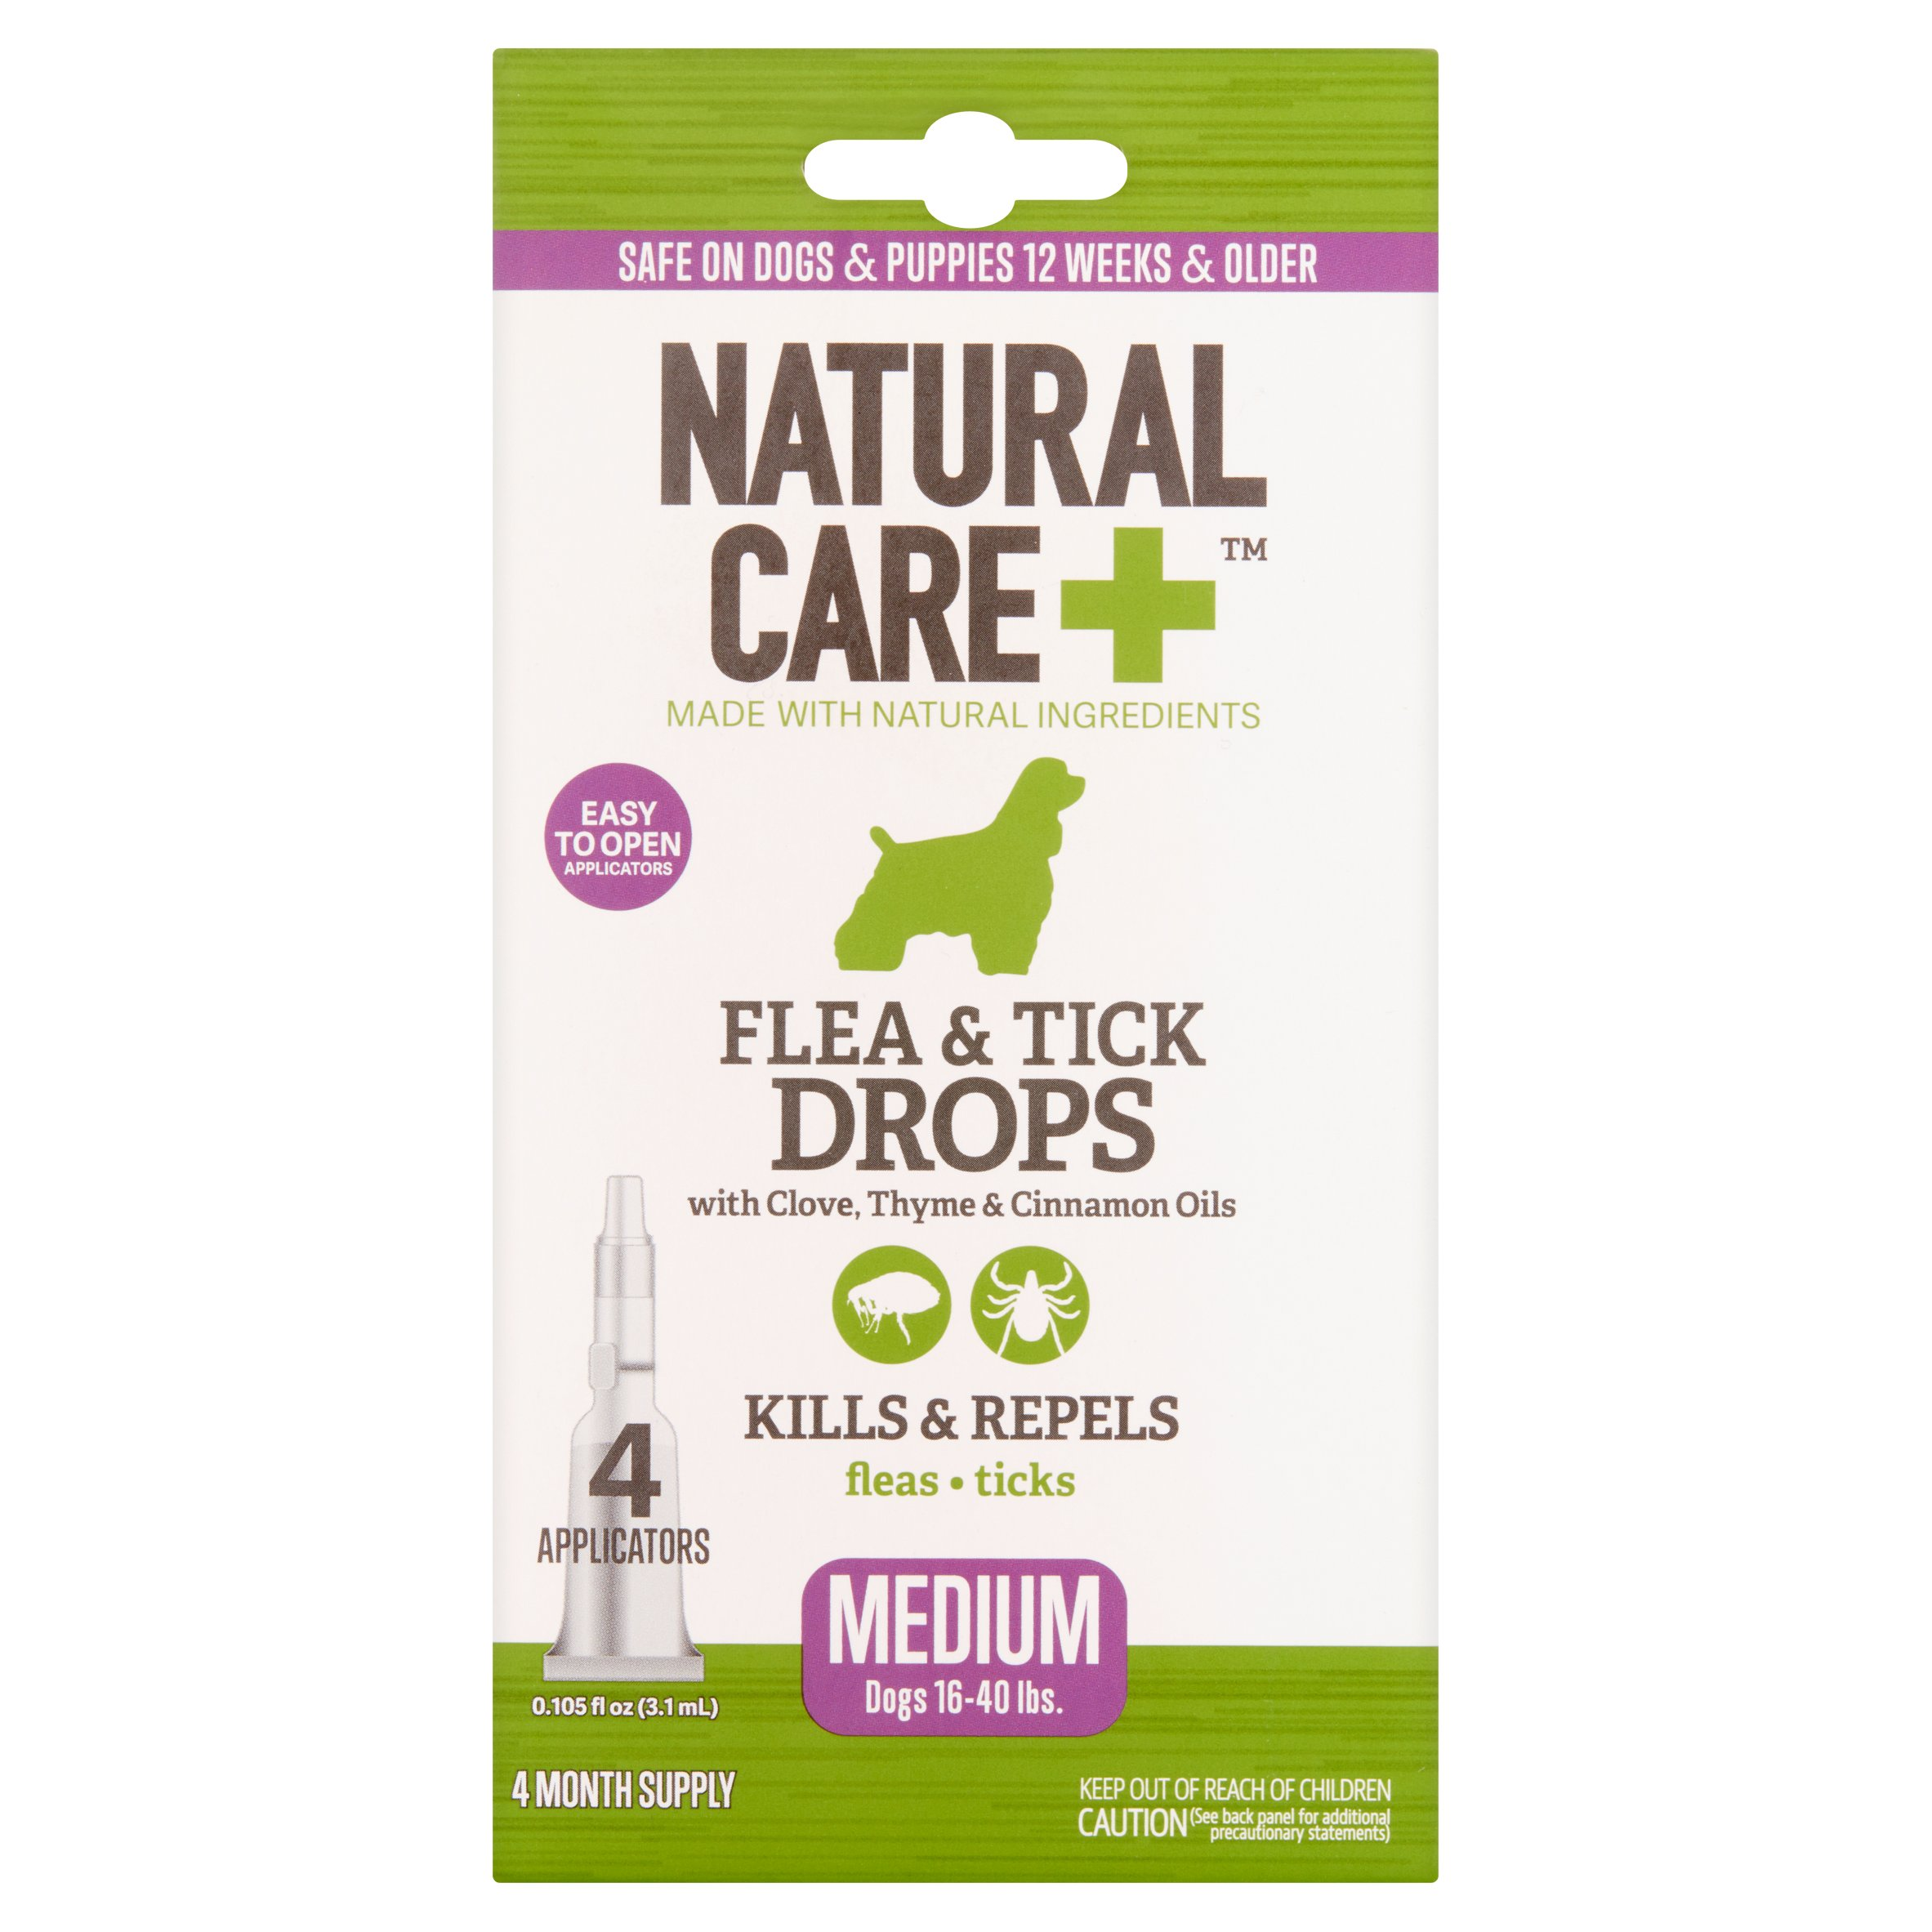 Natural Care+ Flea & Tick Drops with Clove, Thyme & Cinnamon Oils, 0.105 fl oz, 4 count